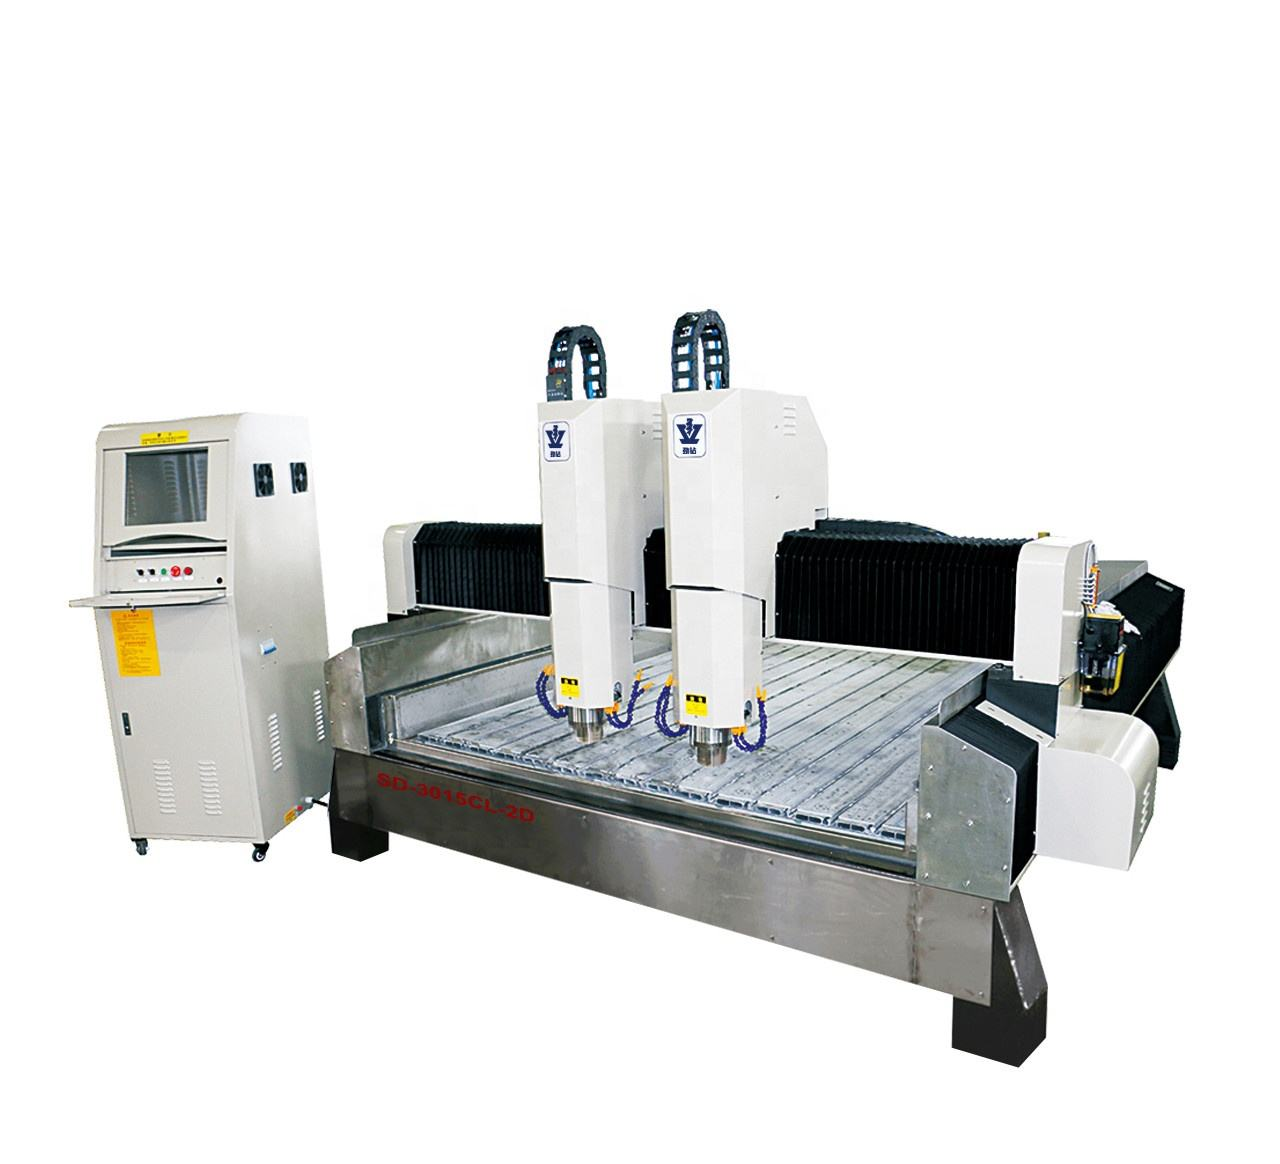 Marble Granite Marble Granite Carving Machines Hot Selling China 3015 Granite Marble Stone Engraving CNC Carving Machine